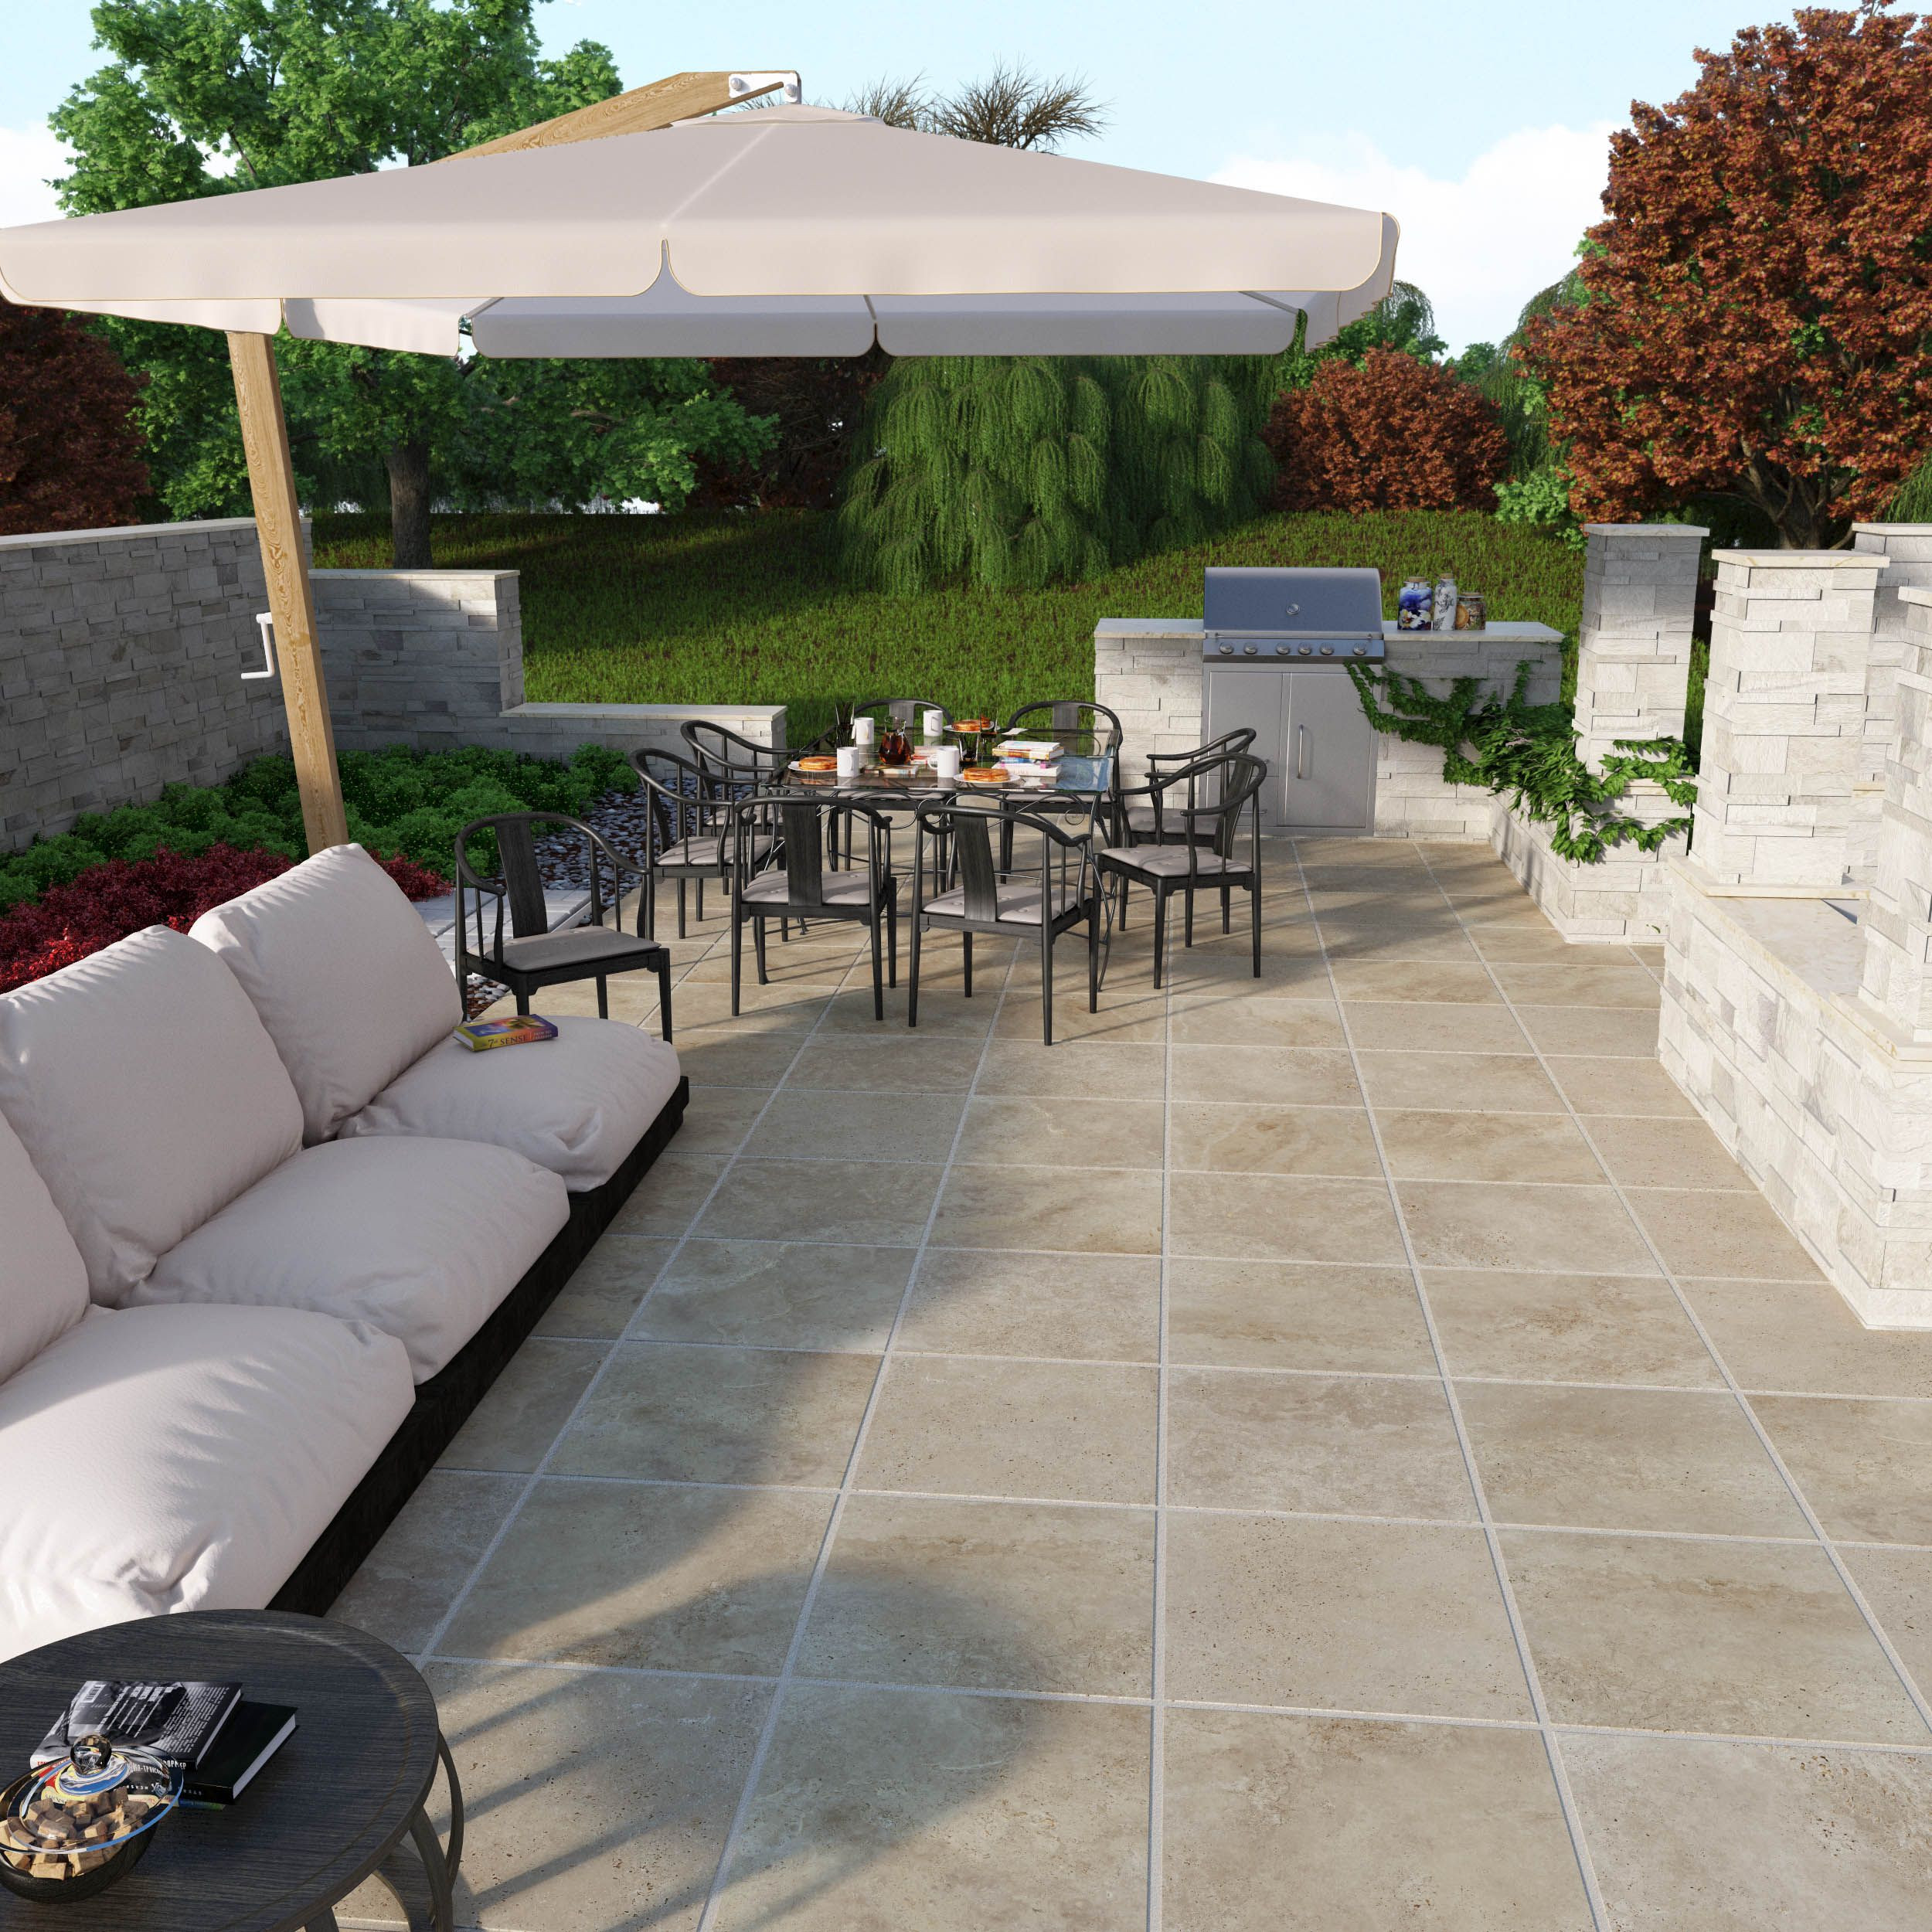 Best ideas about Outdoor Patio Tile . Save or Pin Sandset porcelain patio stones easy to install for a Now.